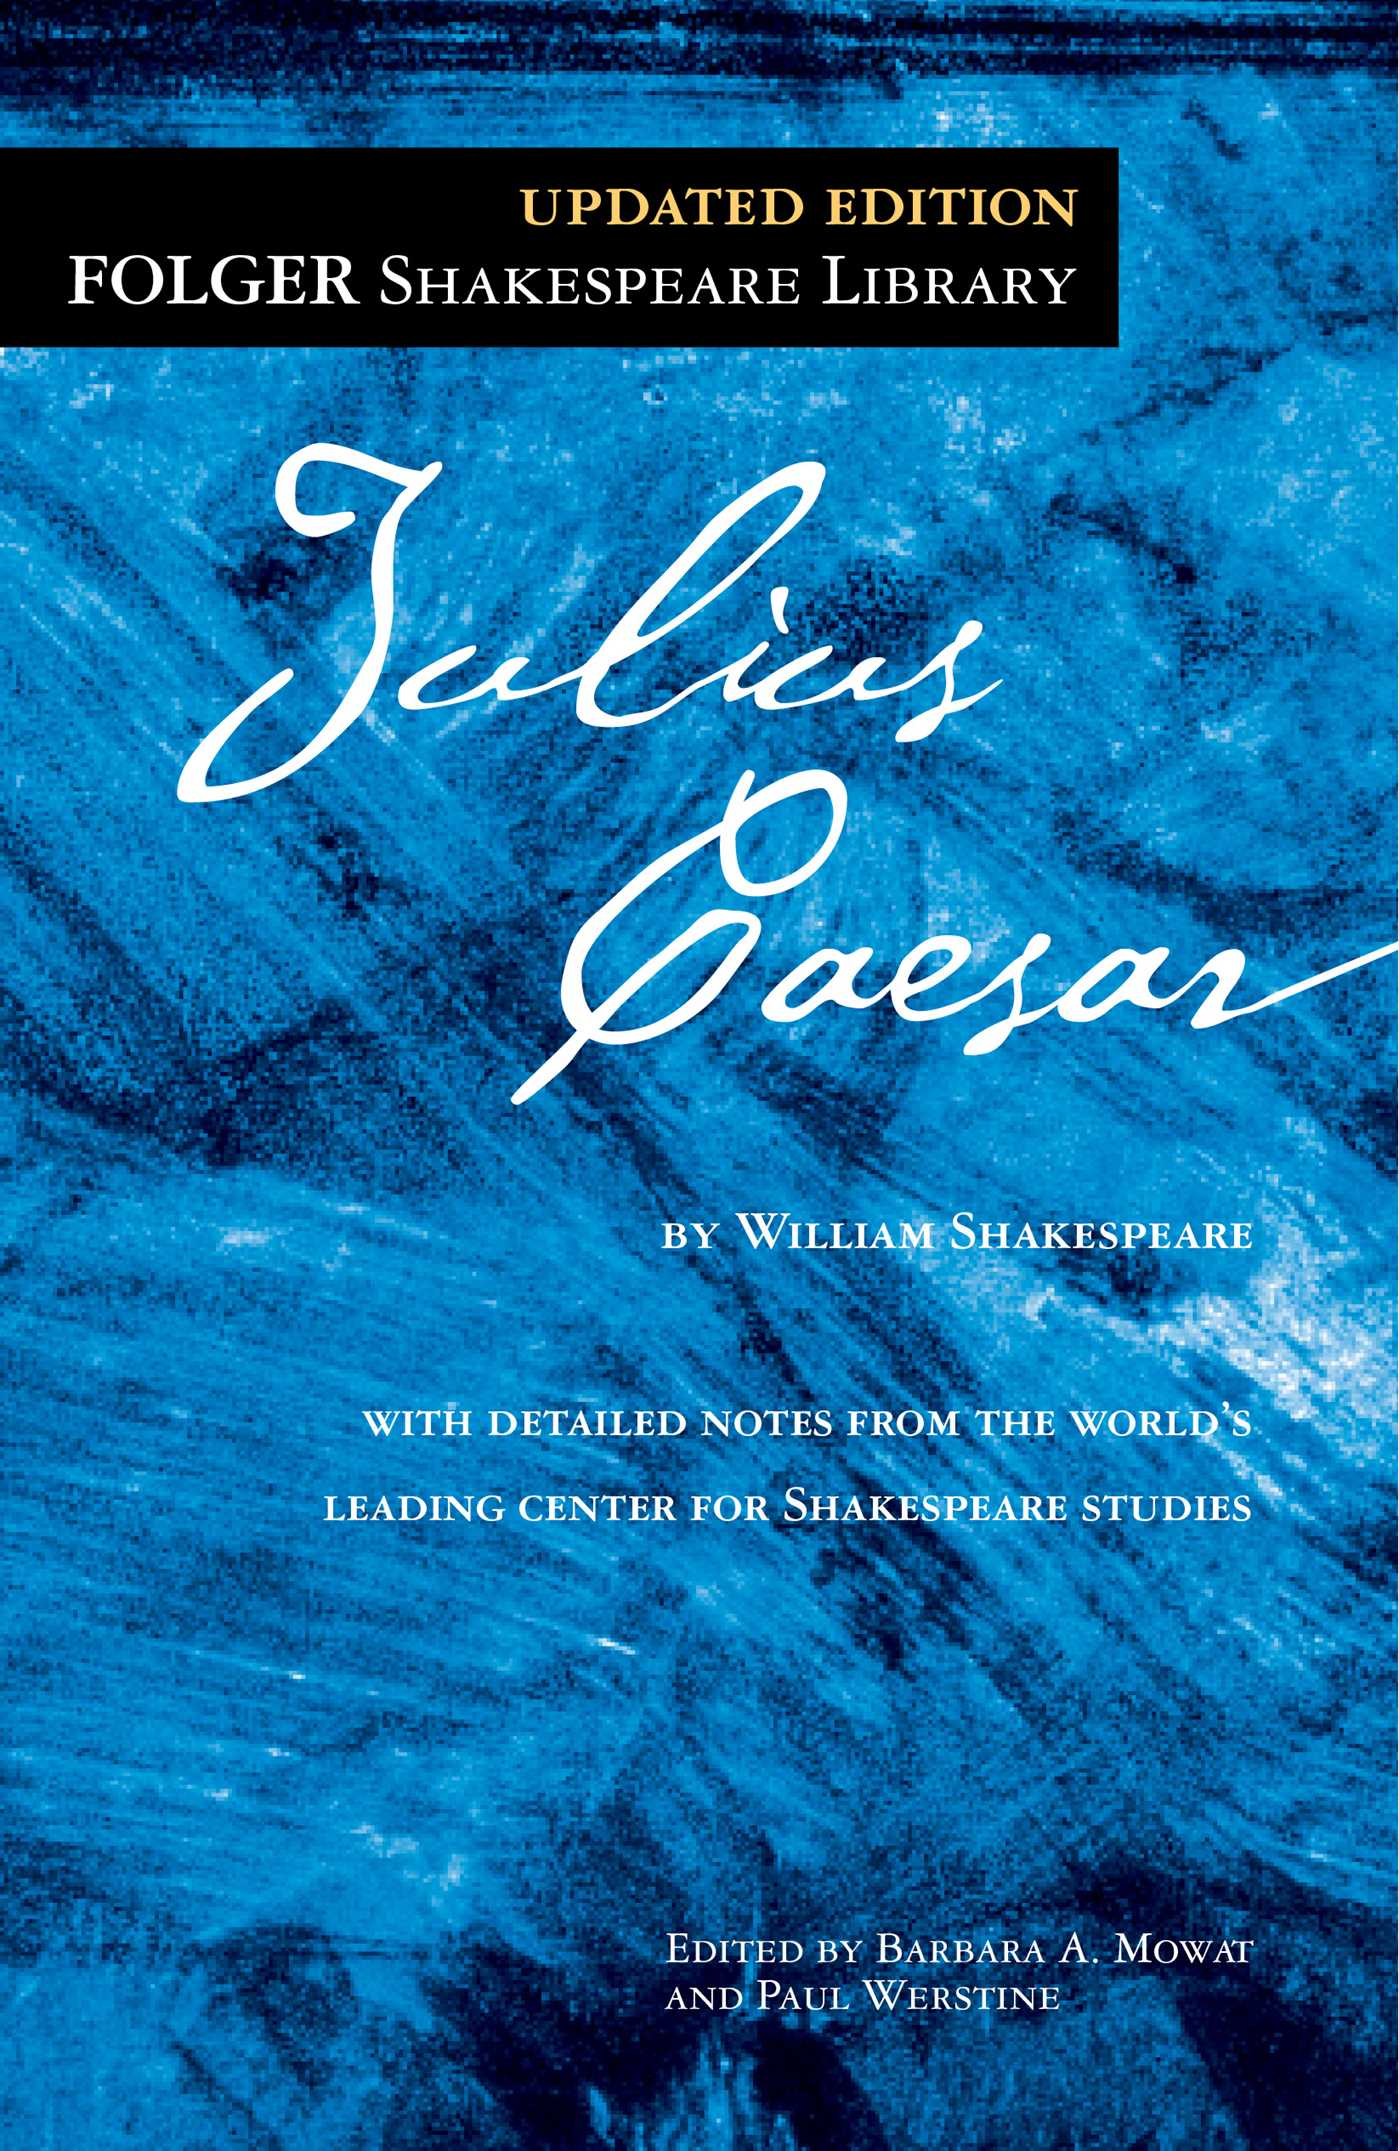 julius caesar book by william shakespeare dr barbara a mowat julius caesar 9781439196717 hr